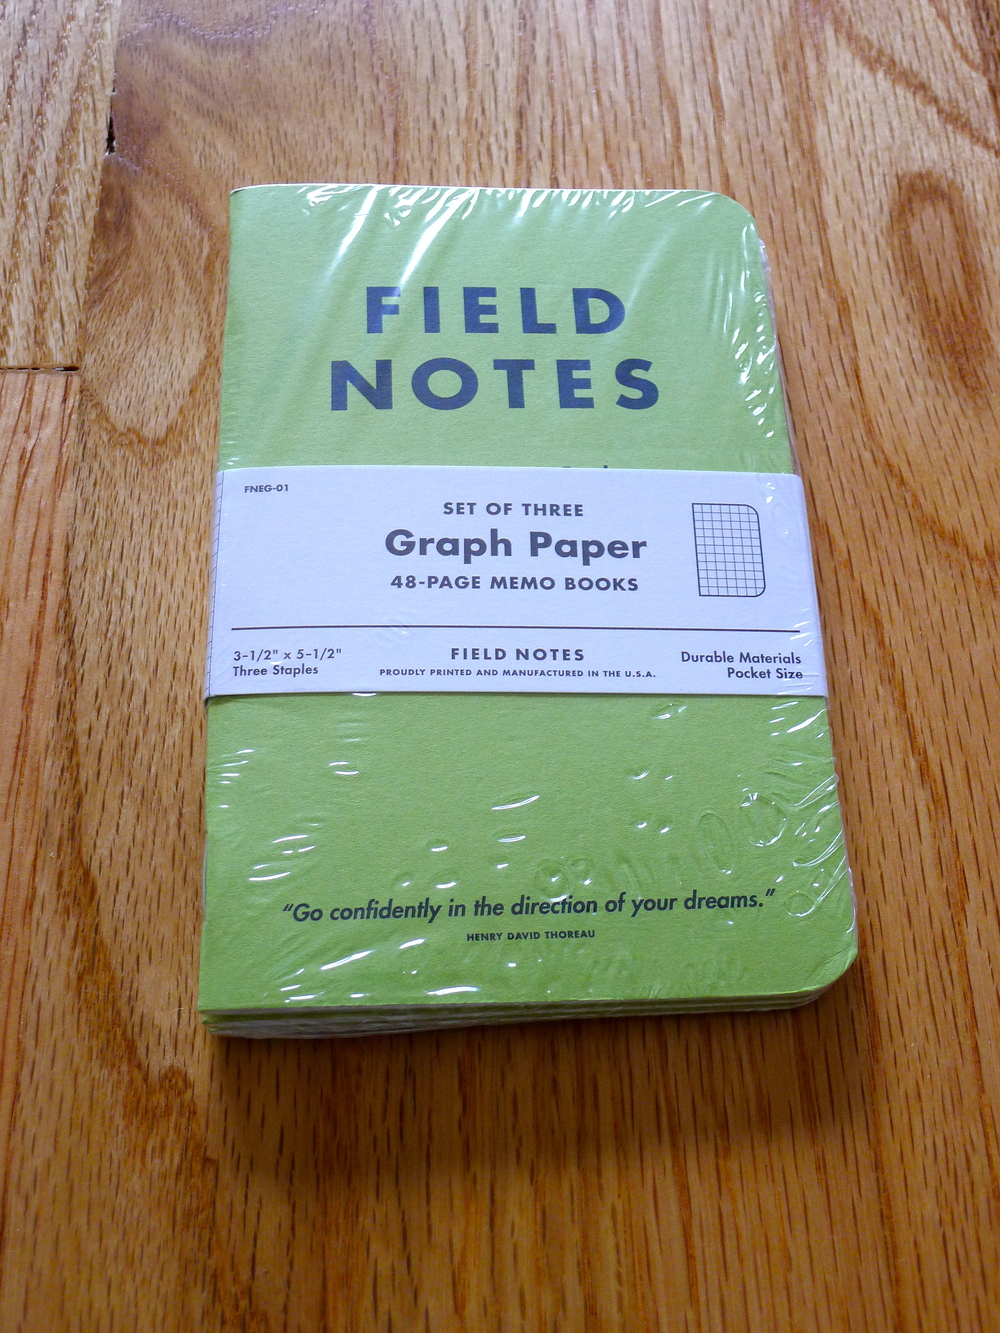 Field Notes JC Penny Special Edition (Green)